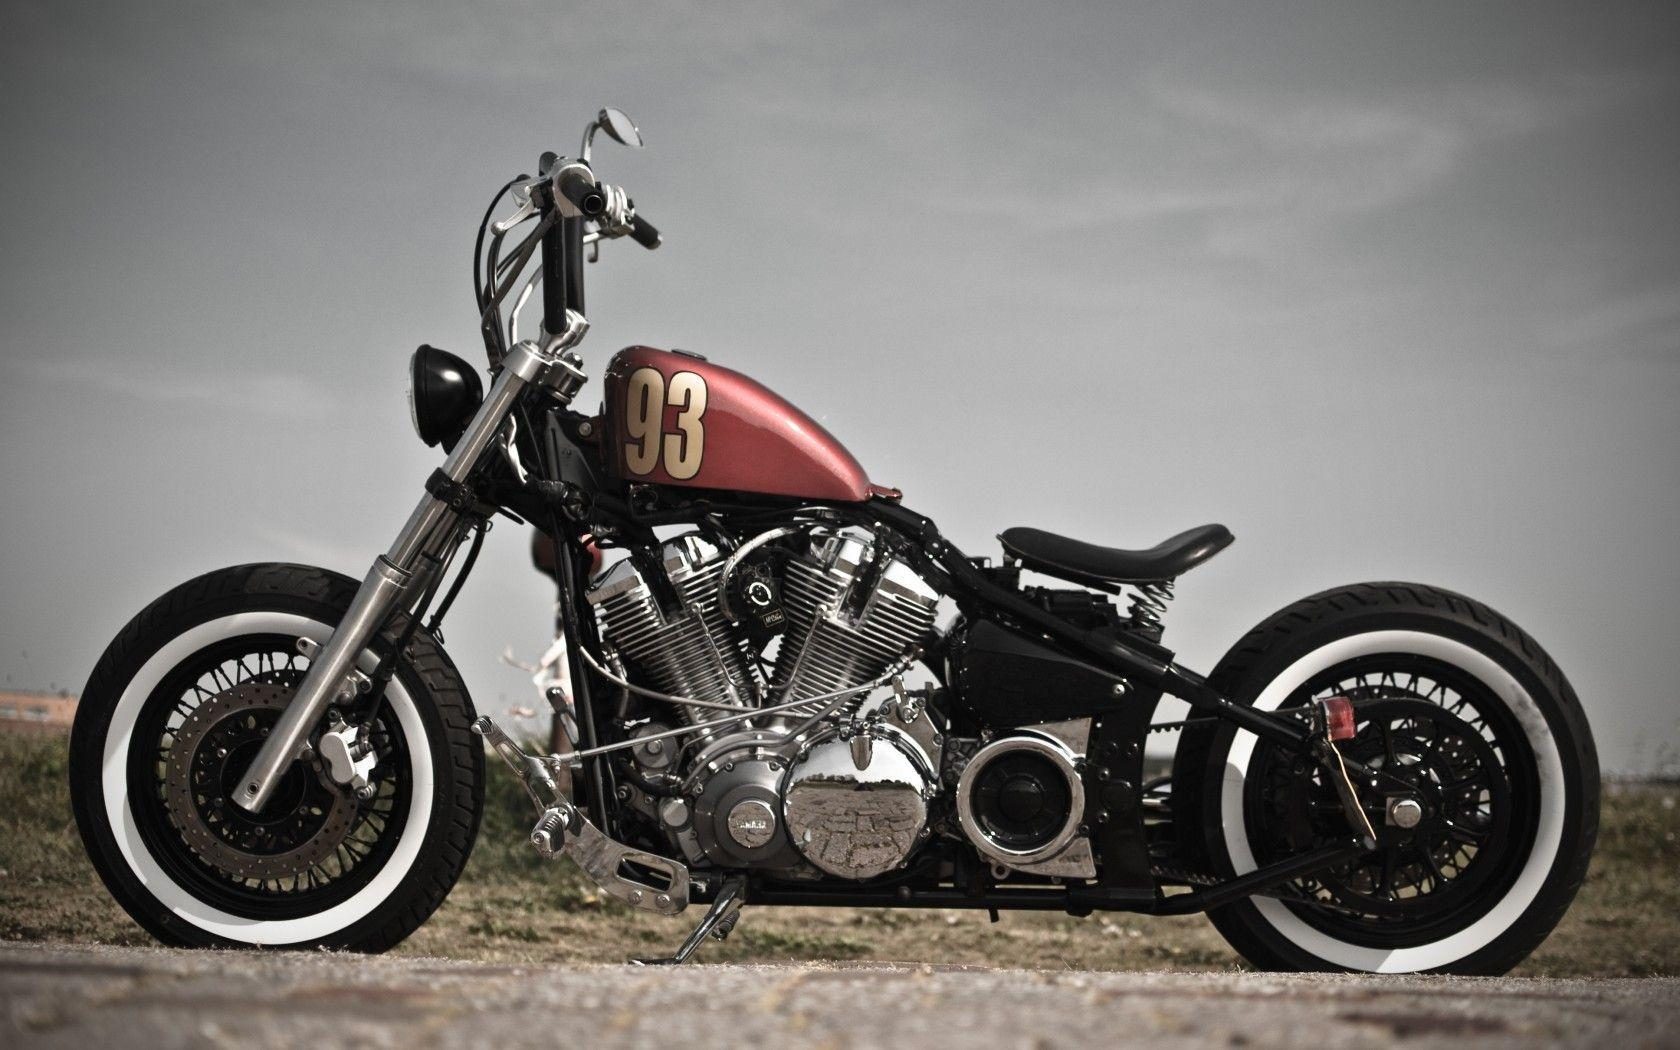 wallpapers xj 650 bobber motorcycle bike design   car pictures